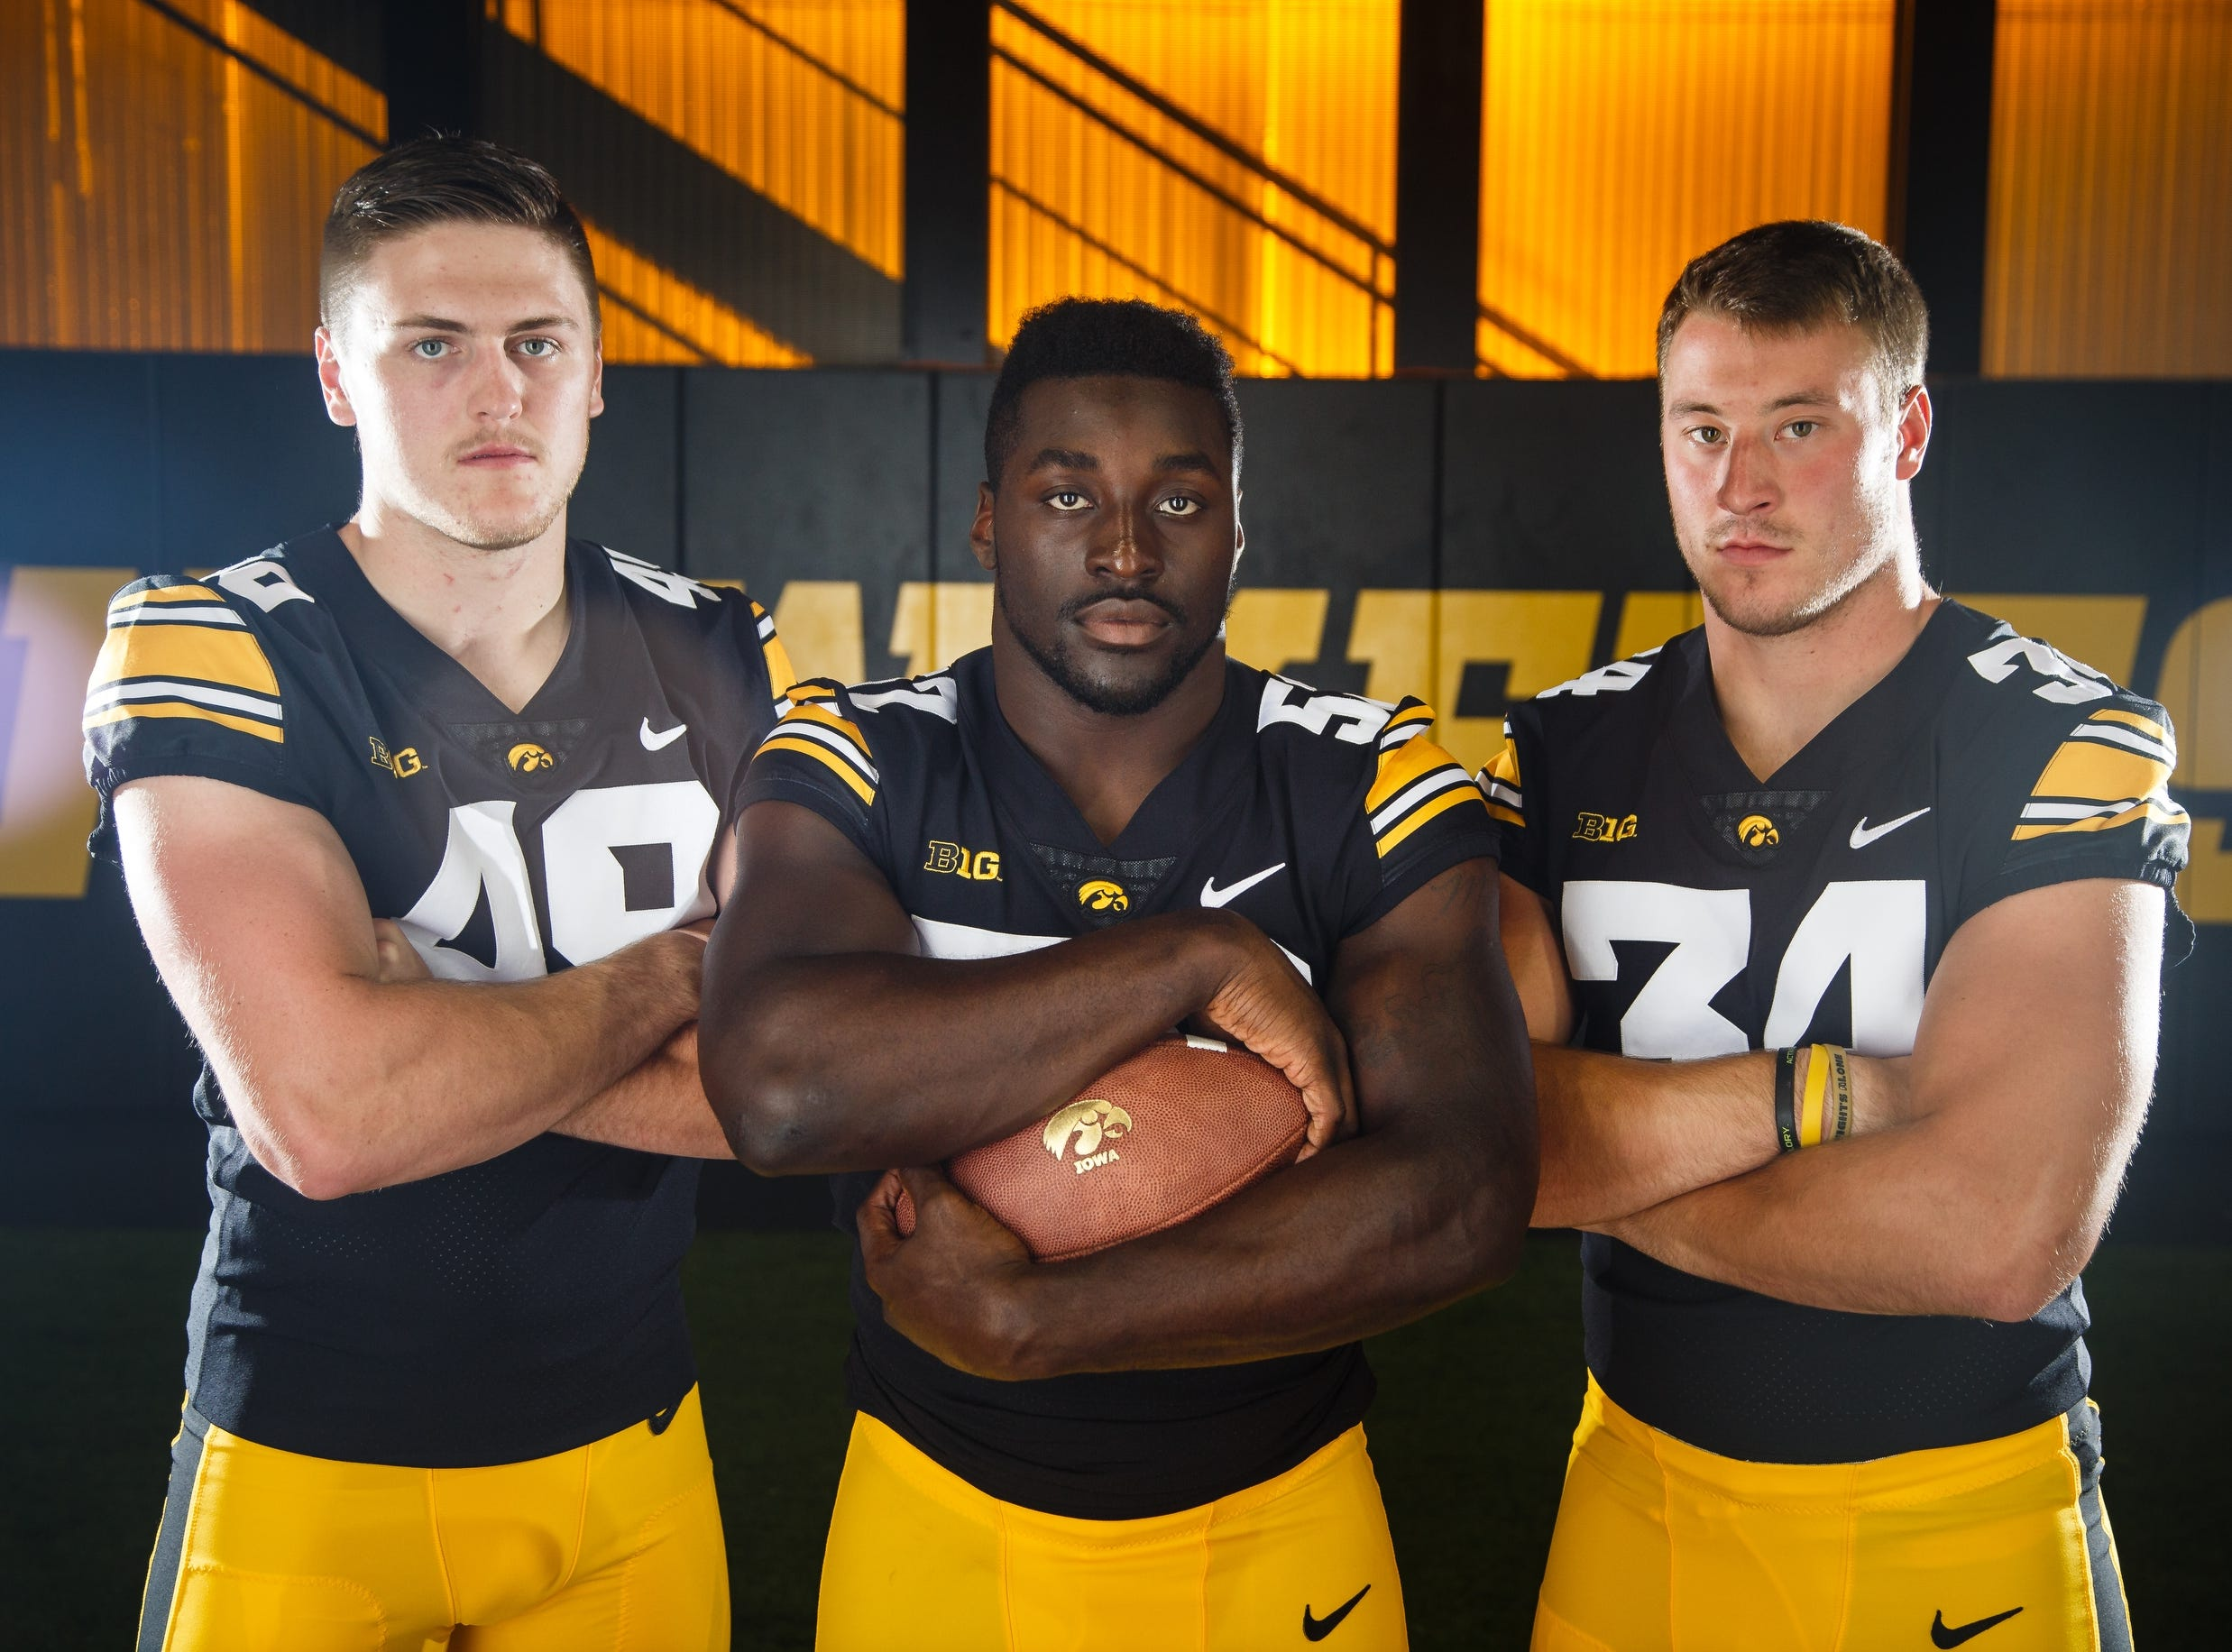 Iowa's Nick Niemann, left, Amani Jones, center, and Kristian Welch, right, pose for a photo during the Iowa Football media day on Friday, Aug. 10, 2018 in Iowa City.